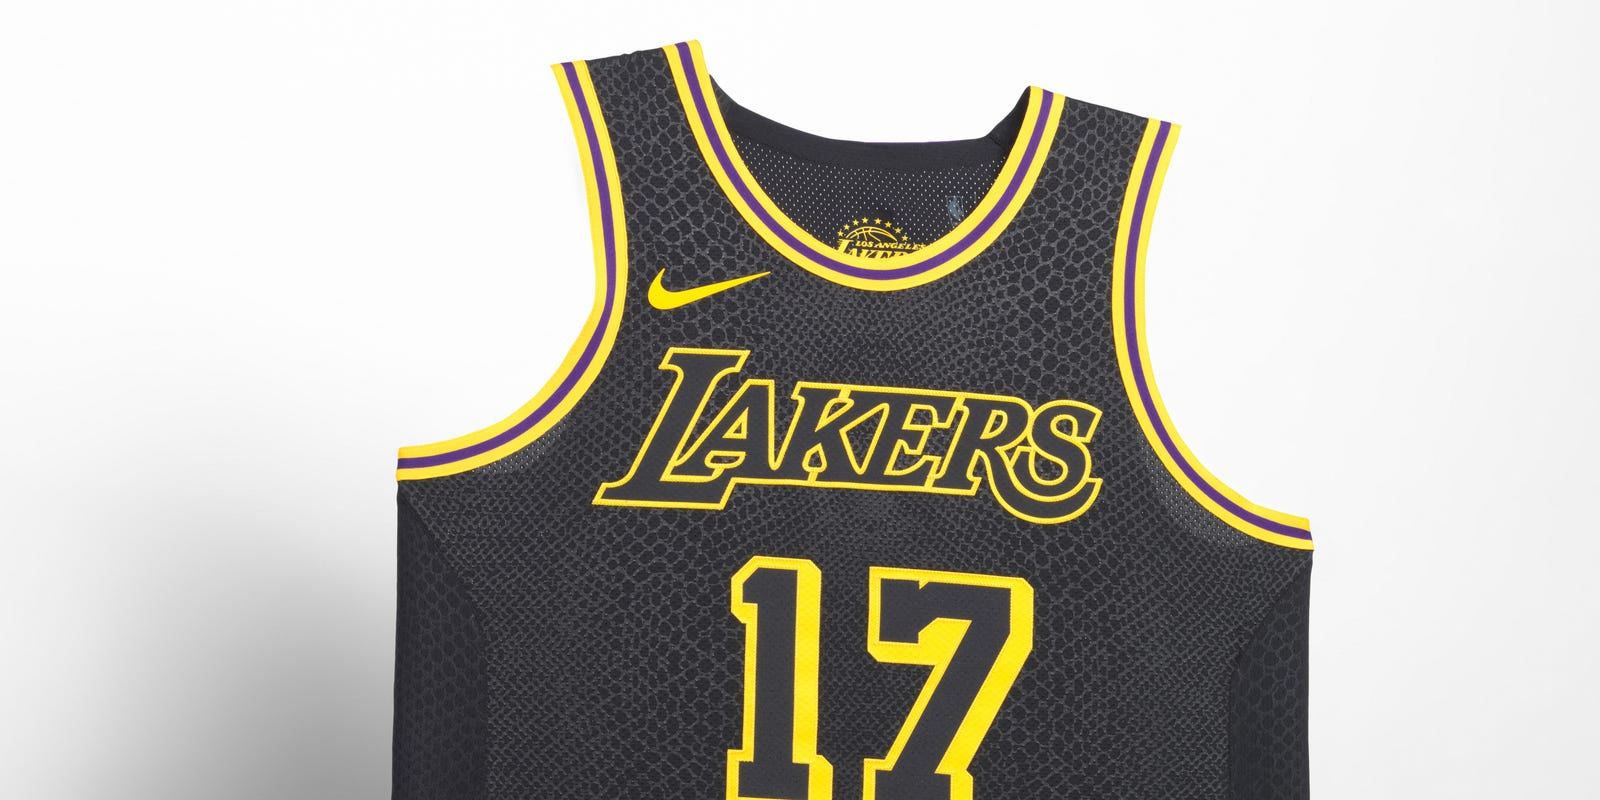 1c93d93e85a Nike NBA City Edition uniforms  The story behind the design process